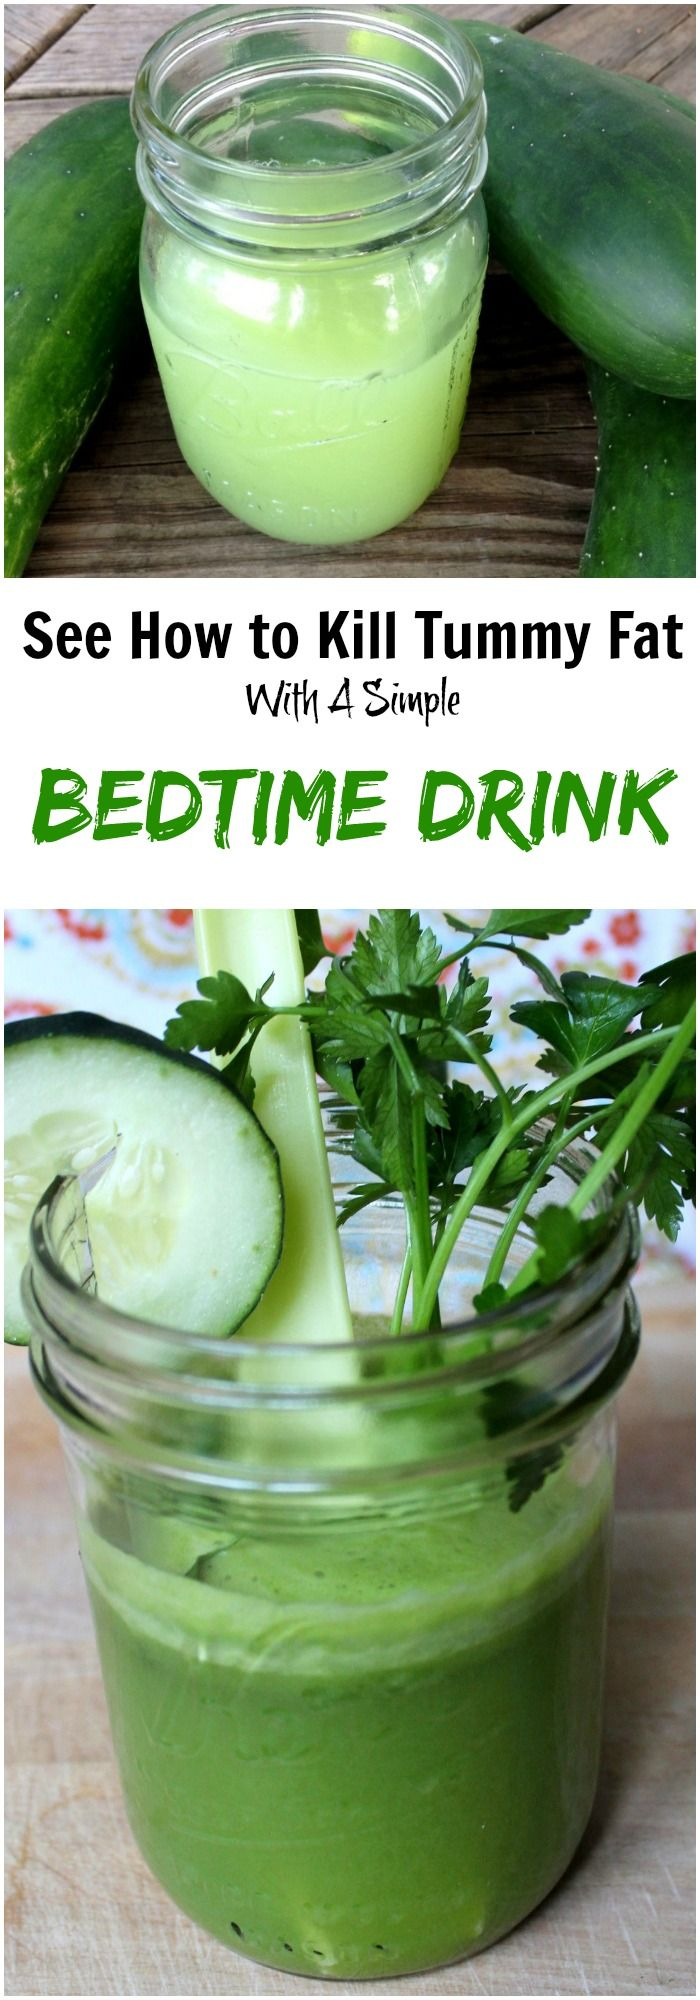 This 1 Simple Bedtime Drink Kills [Tummy Fat] While You Sleep ...